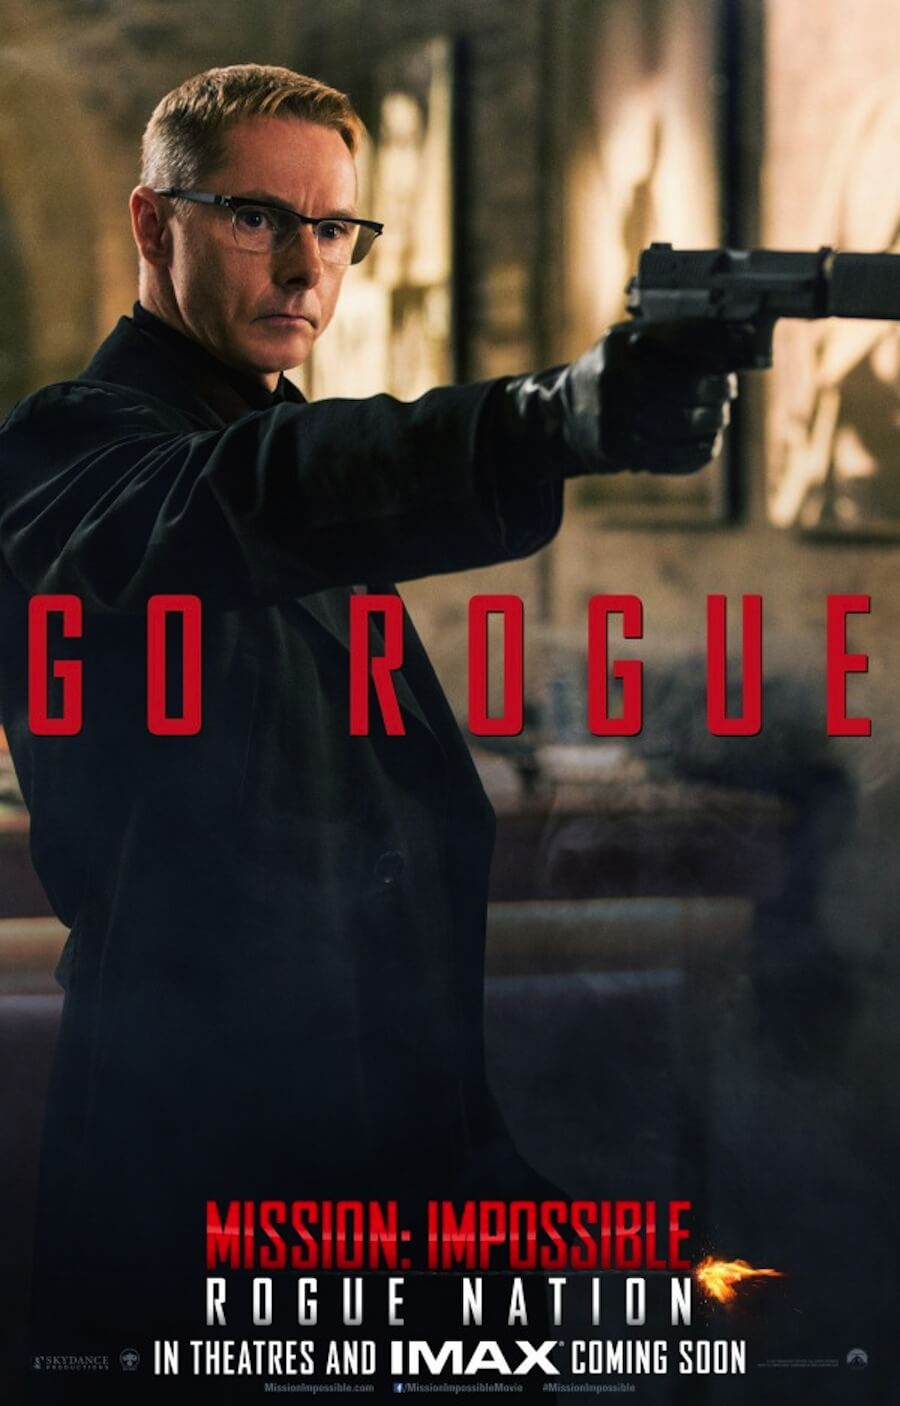 GEEK OUT! Second MISSION: IMPOSSIBLE - ROGUE NATION ...